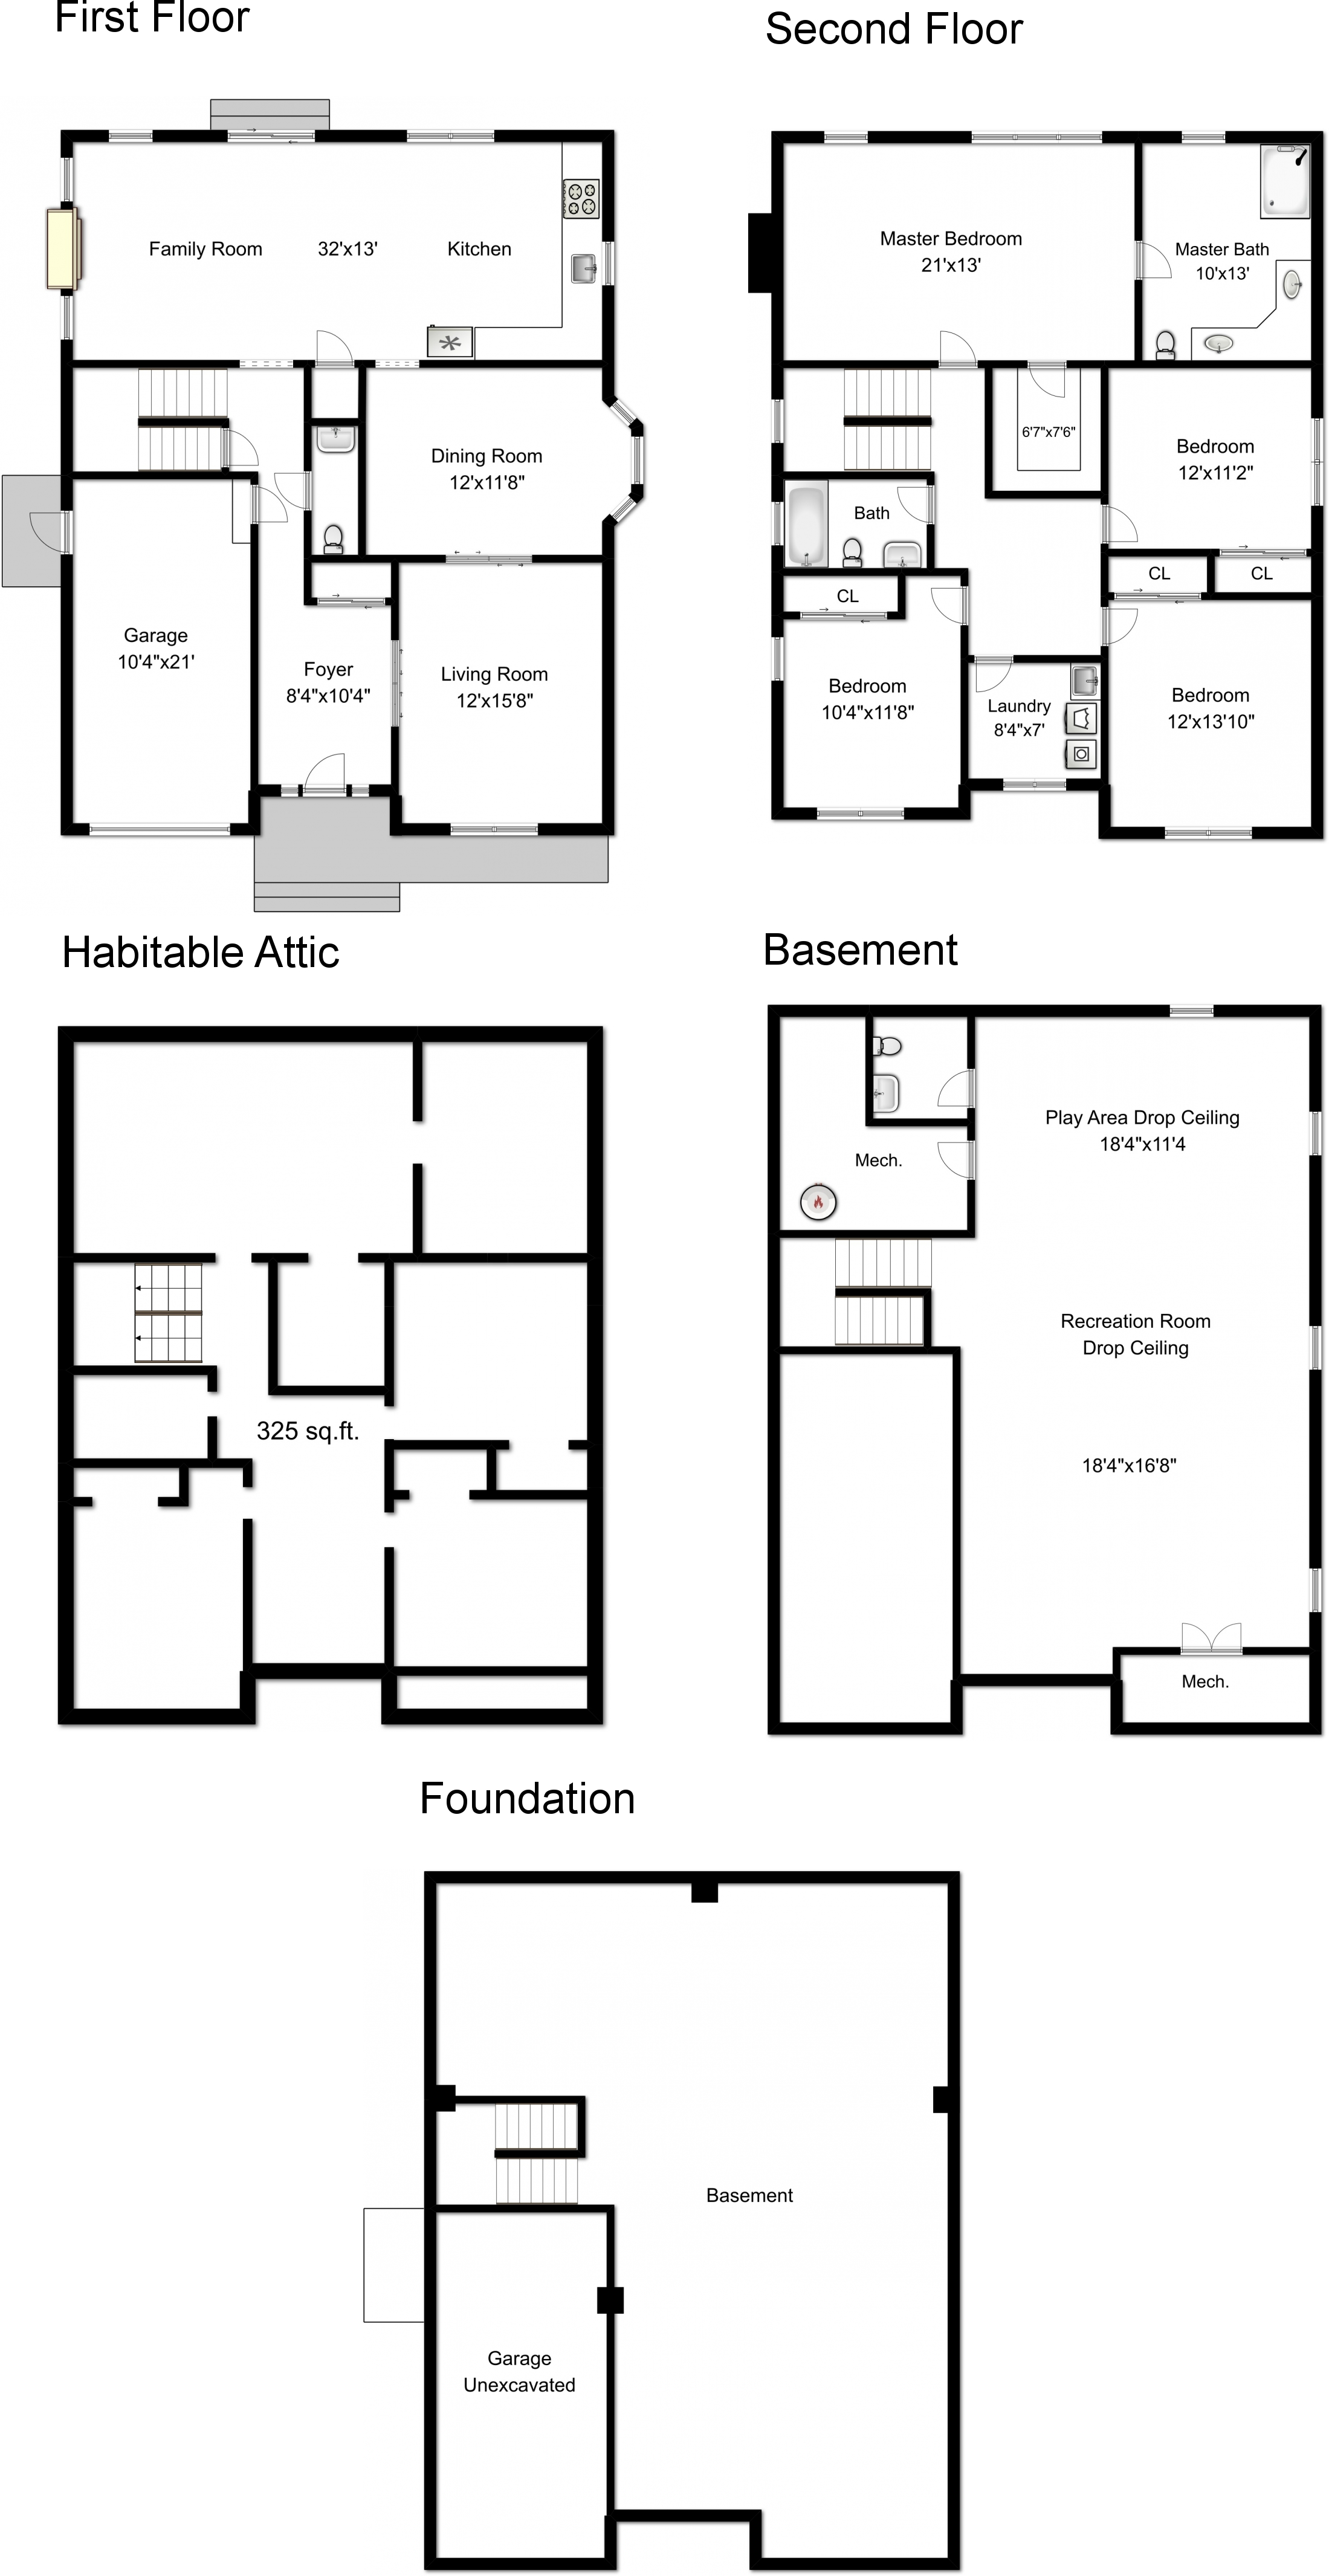 110 floor plan JPEG